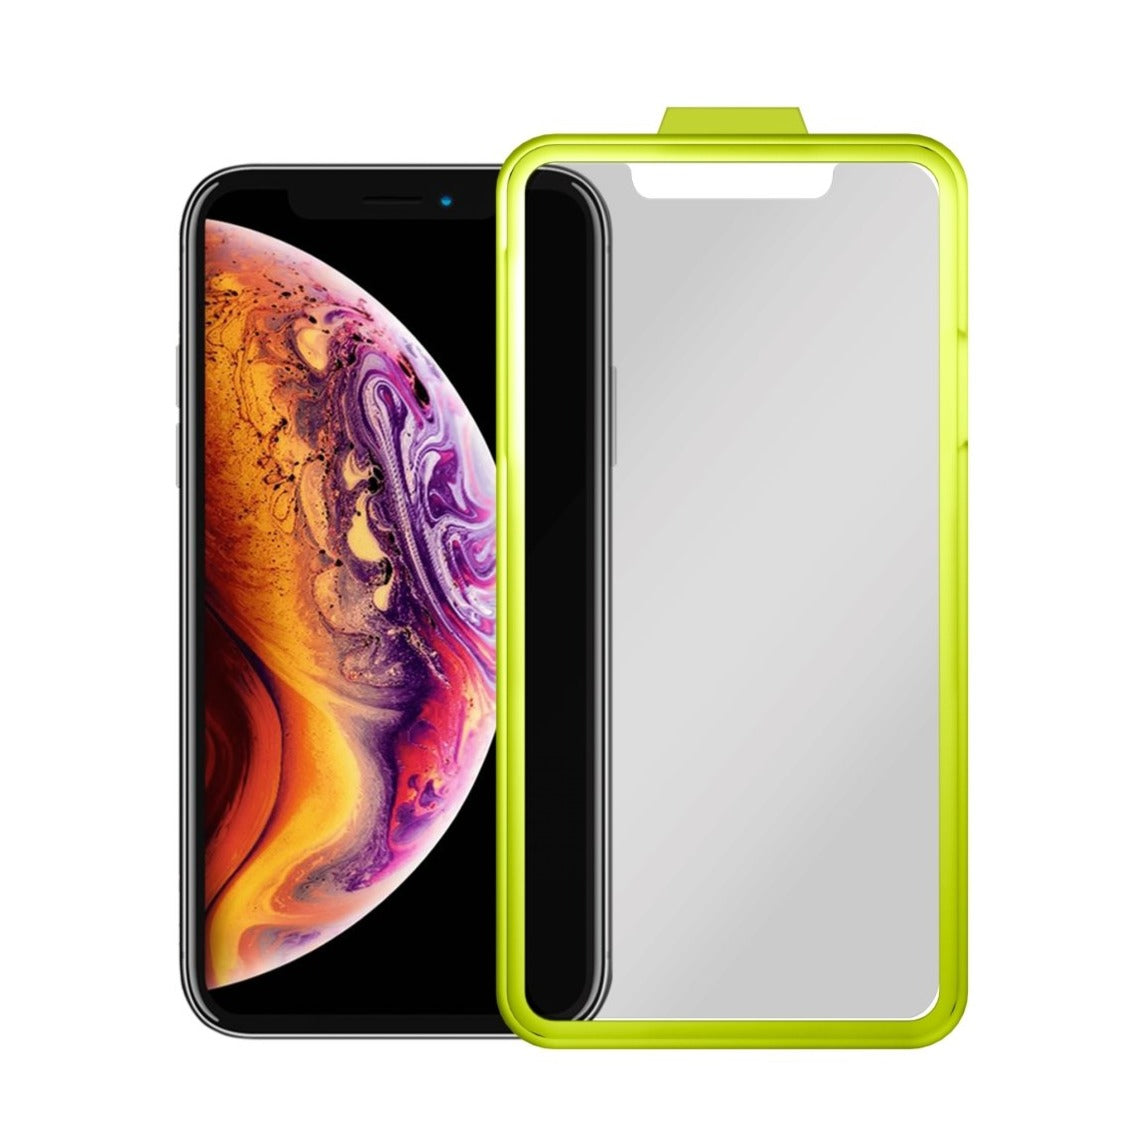 Fortress Tempered Glass Screen Protector for iPhone 11 Pro Max/XS Max - $200 Protection